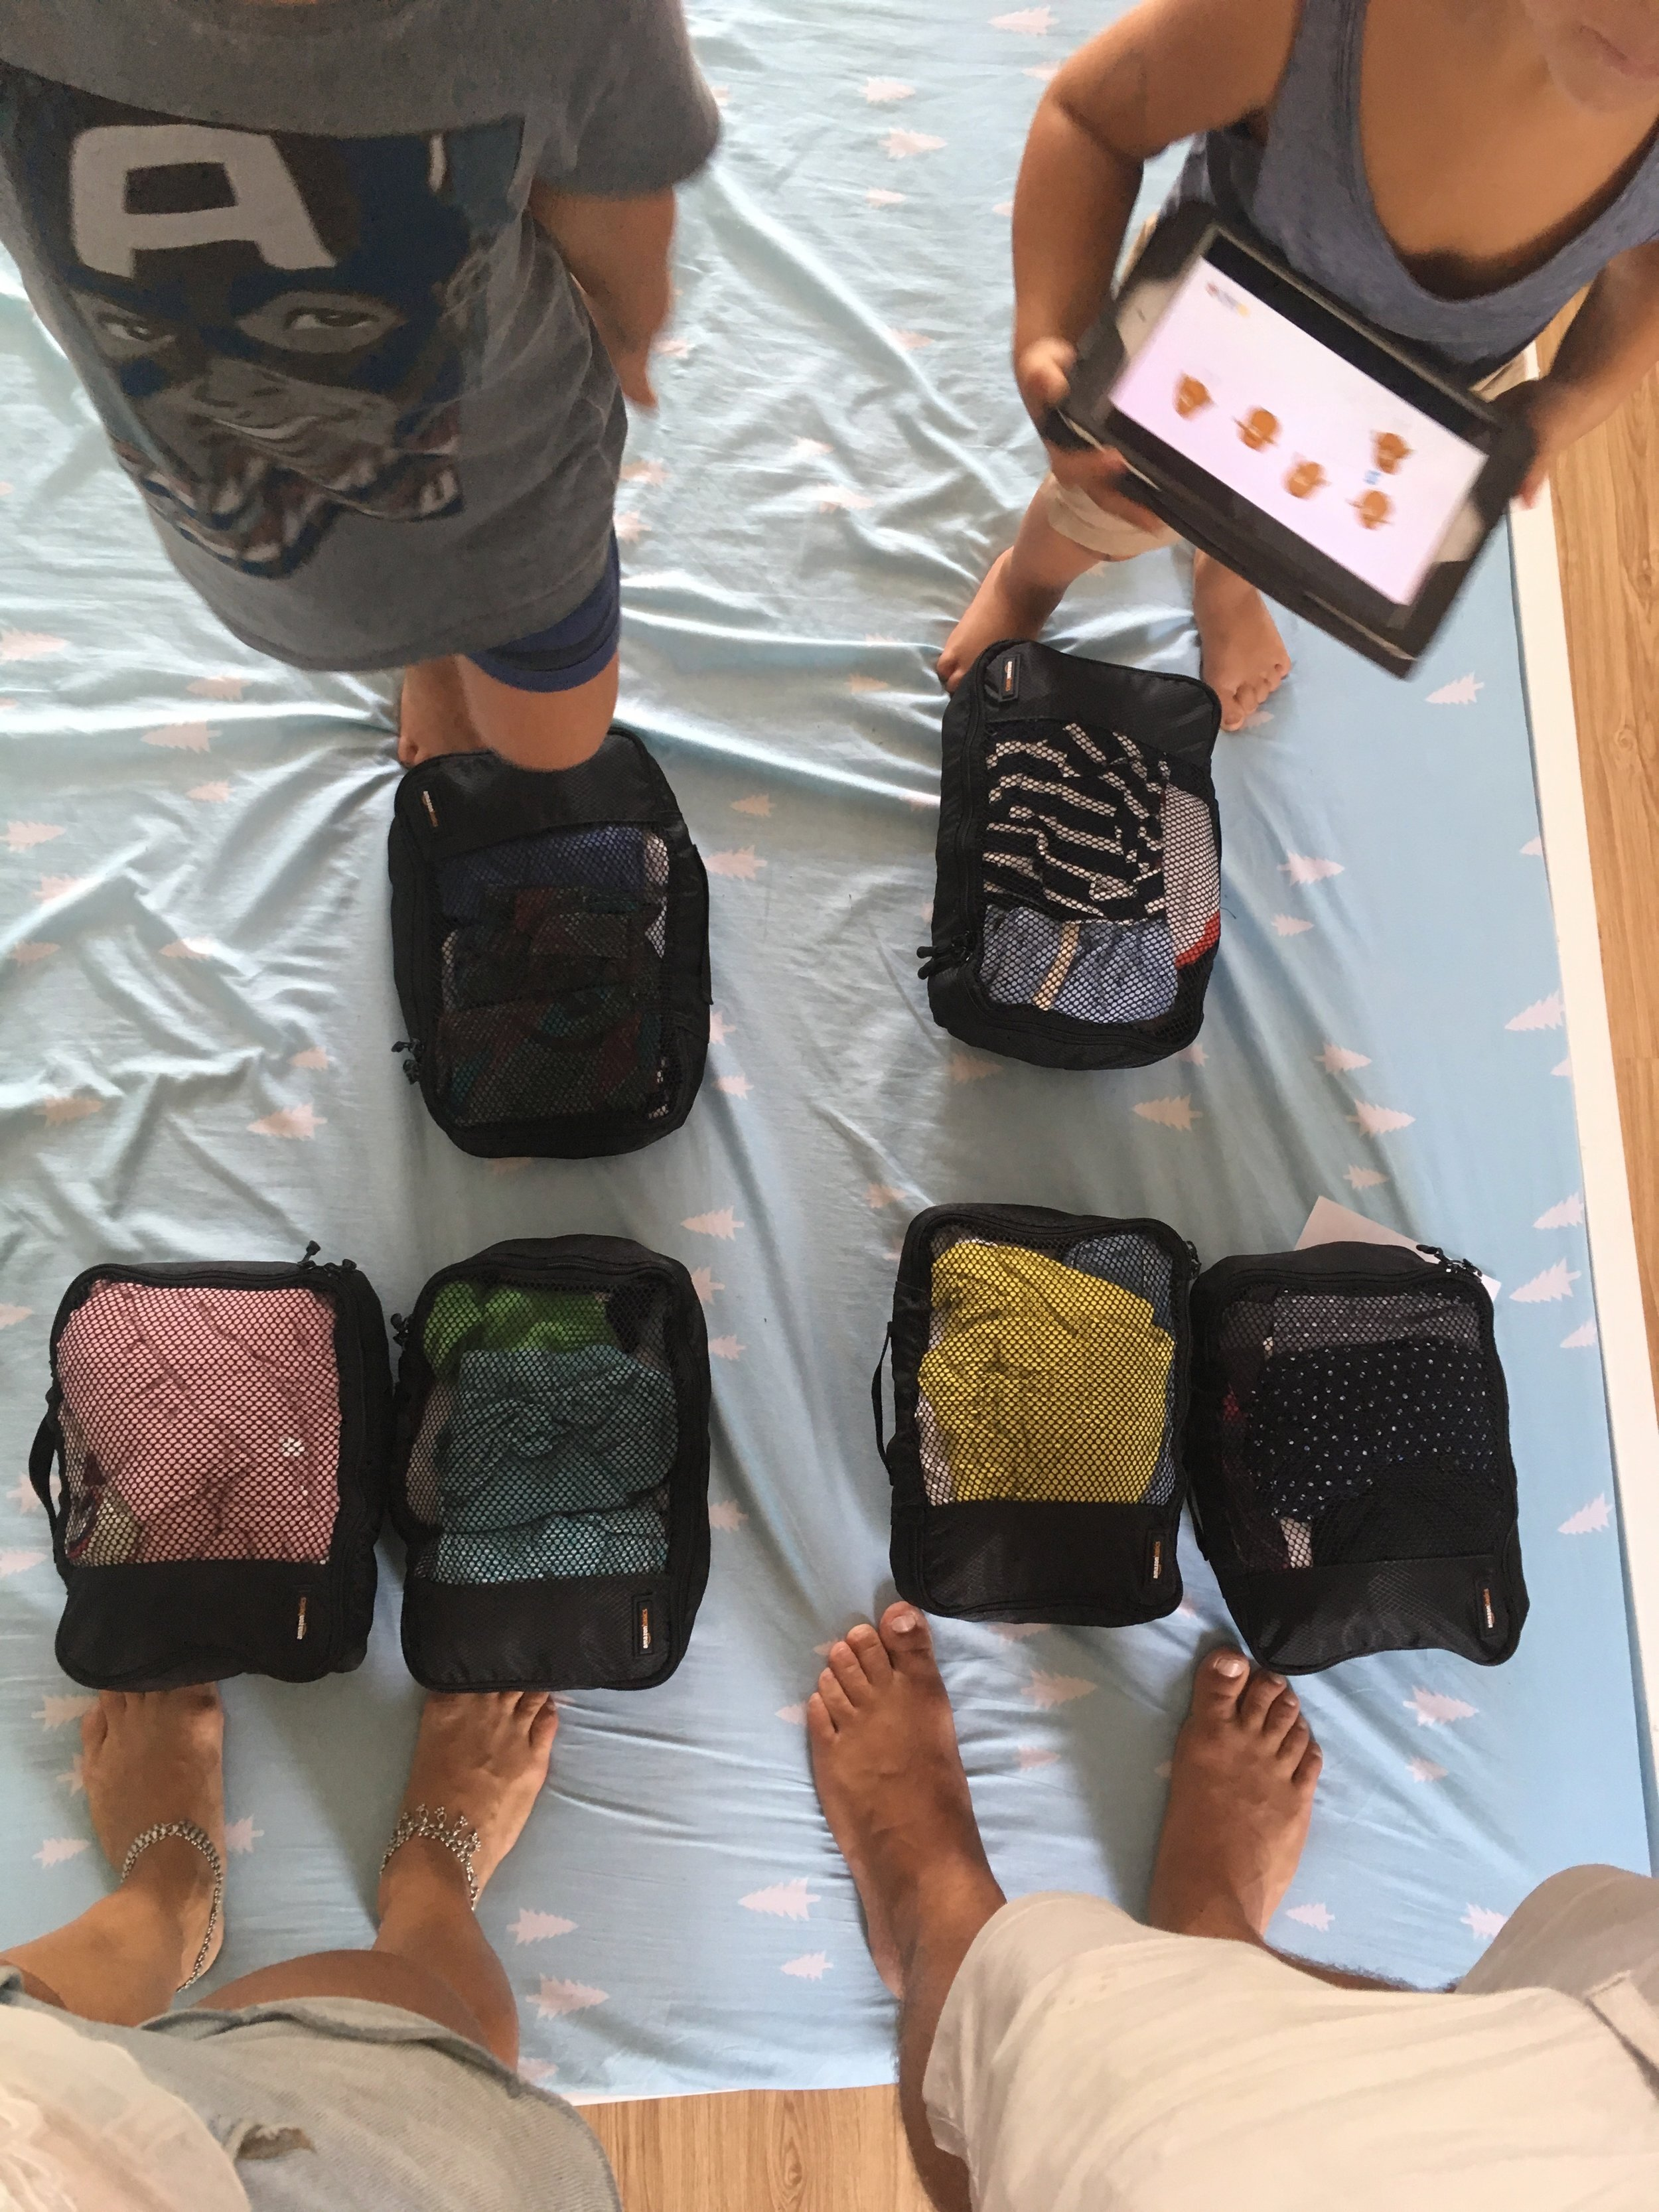 The 6 bags with clothes.